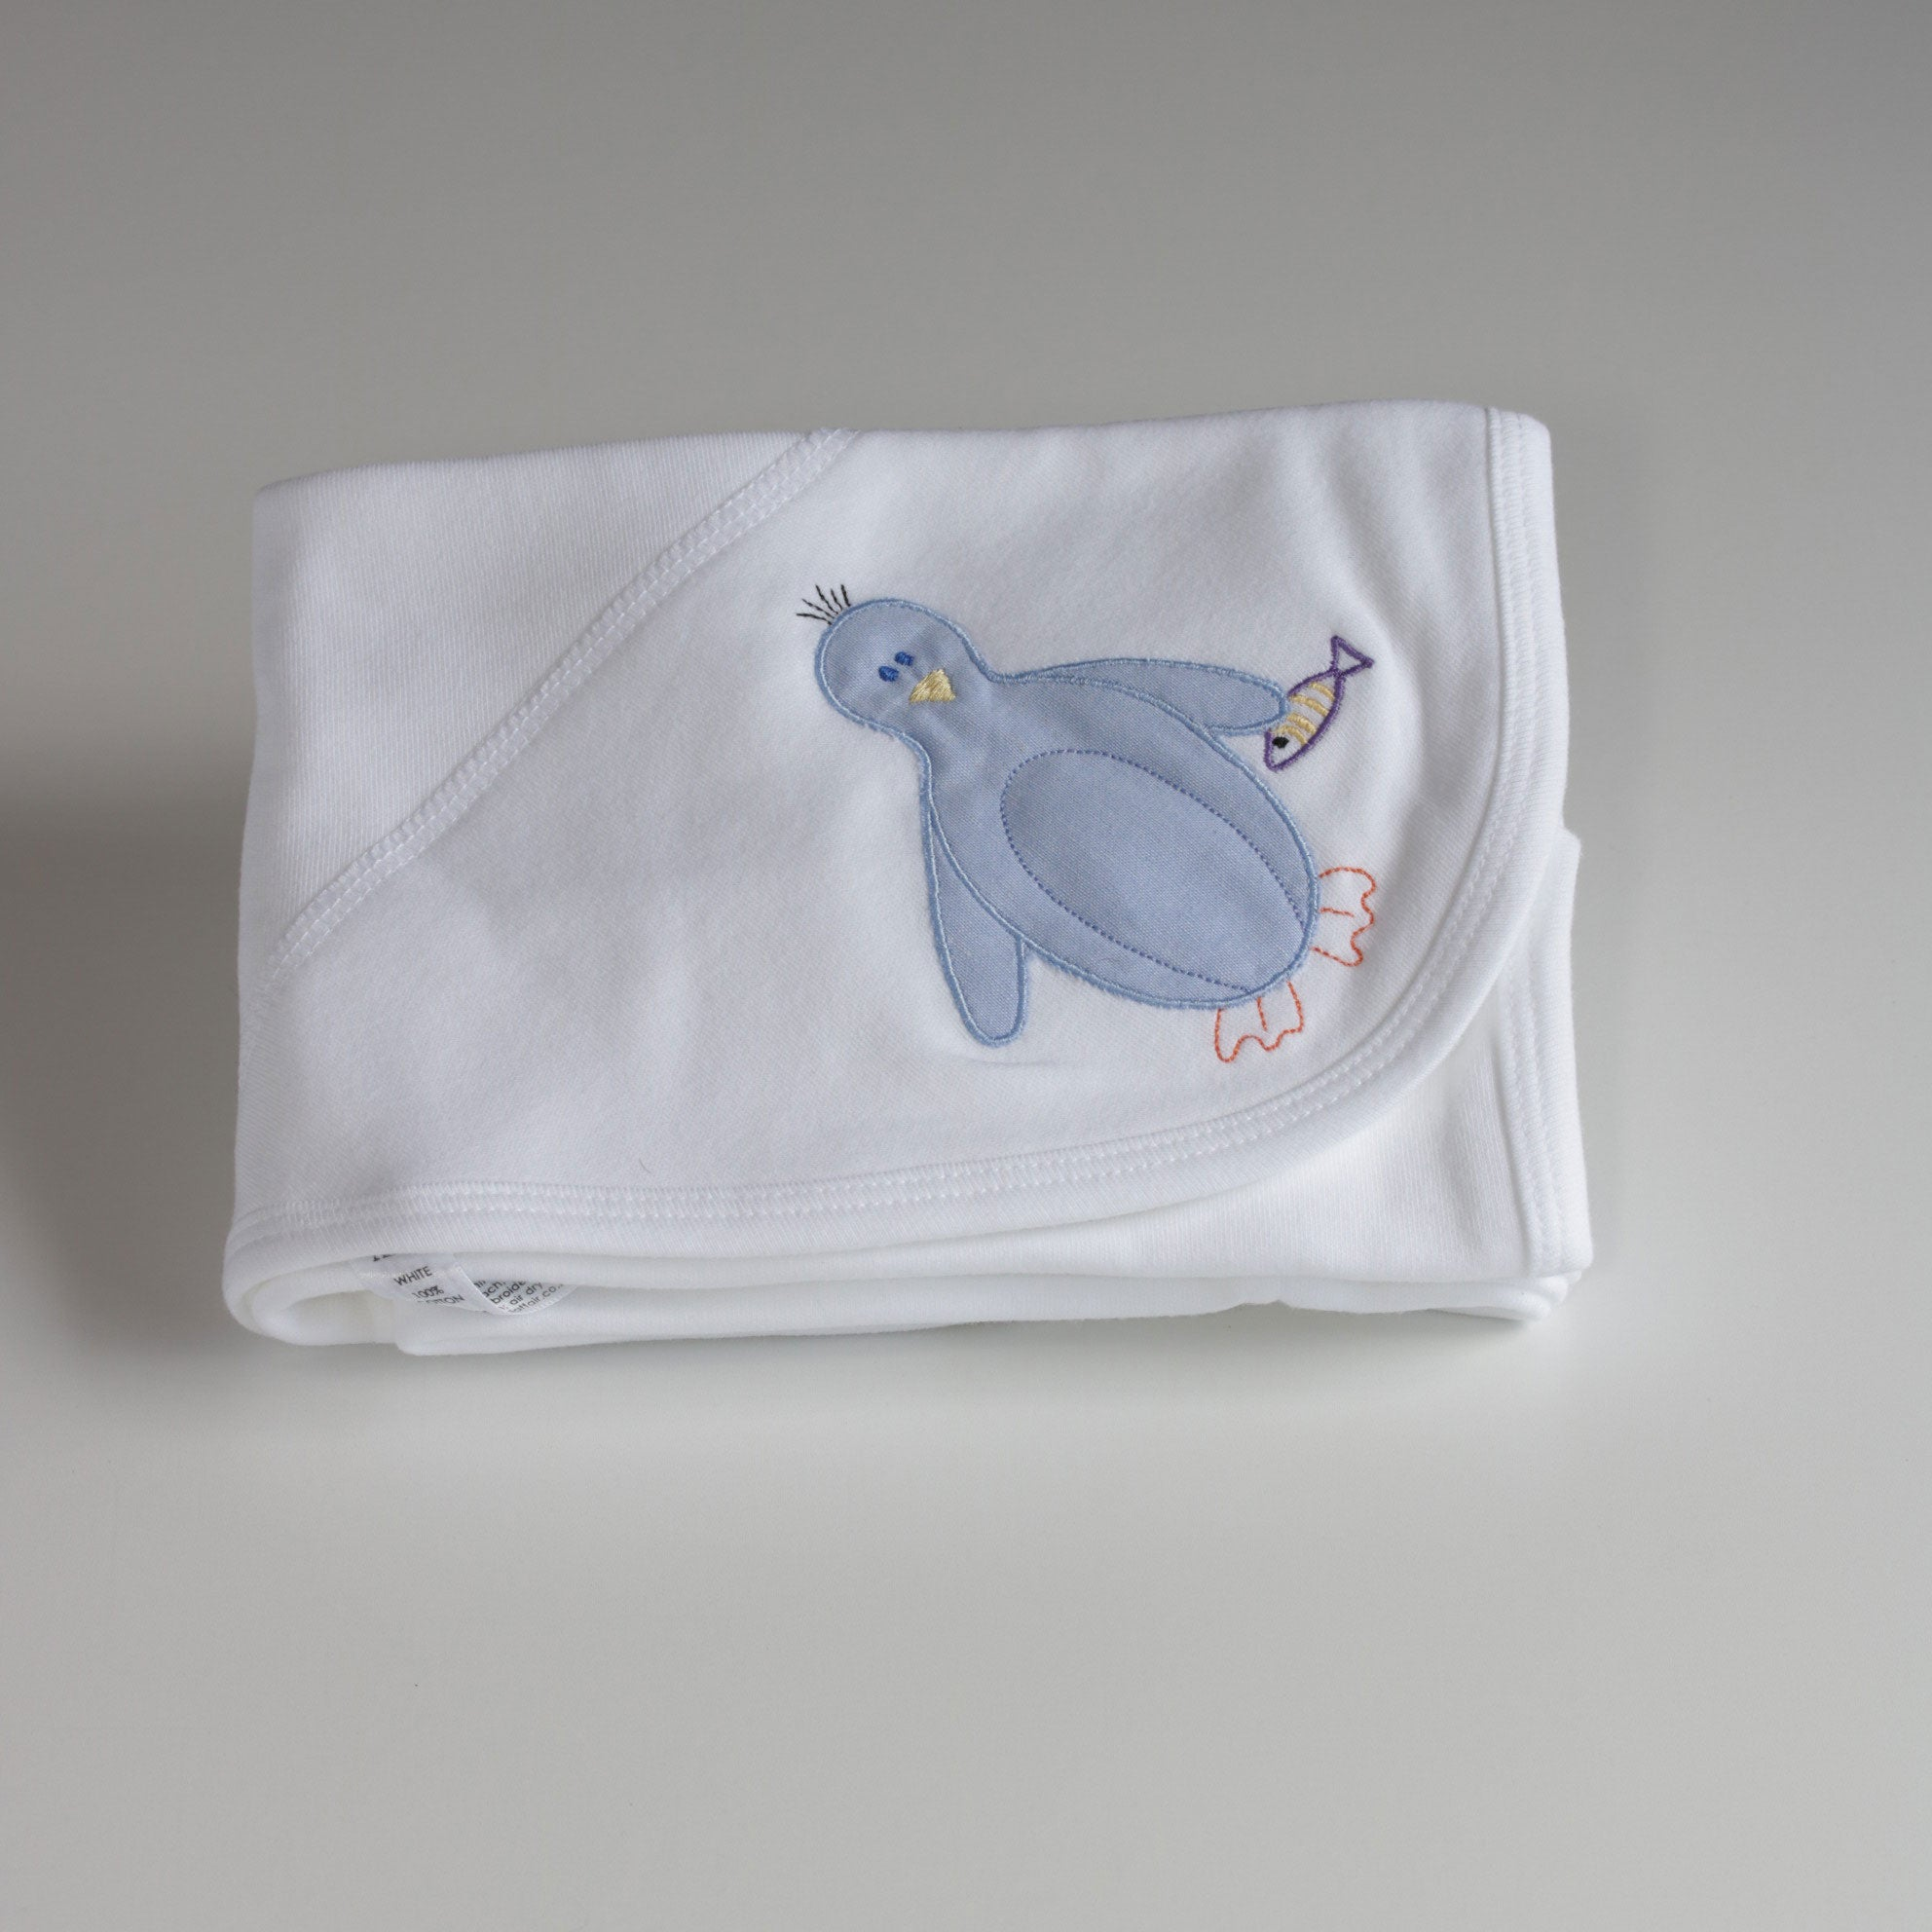 Nocturnal Affair Swaddle Blanket - Penguin